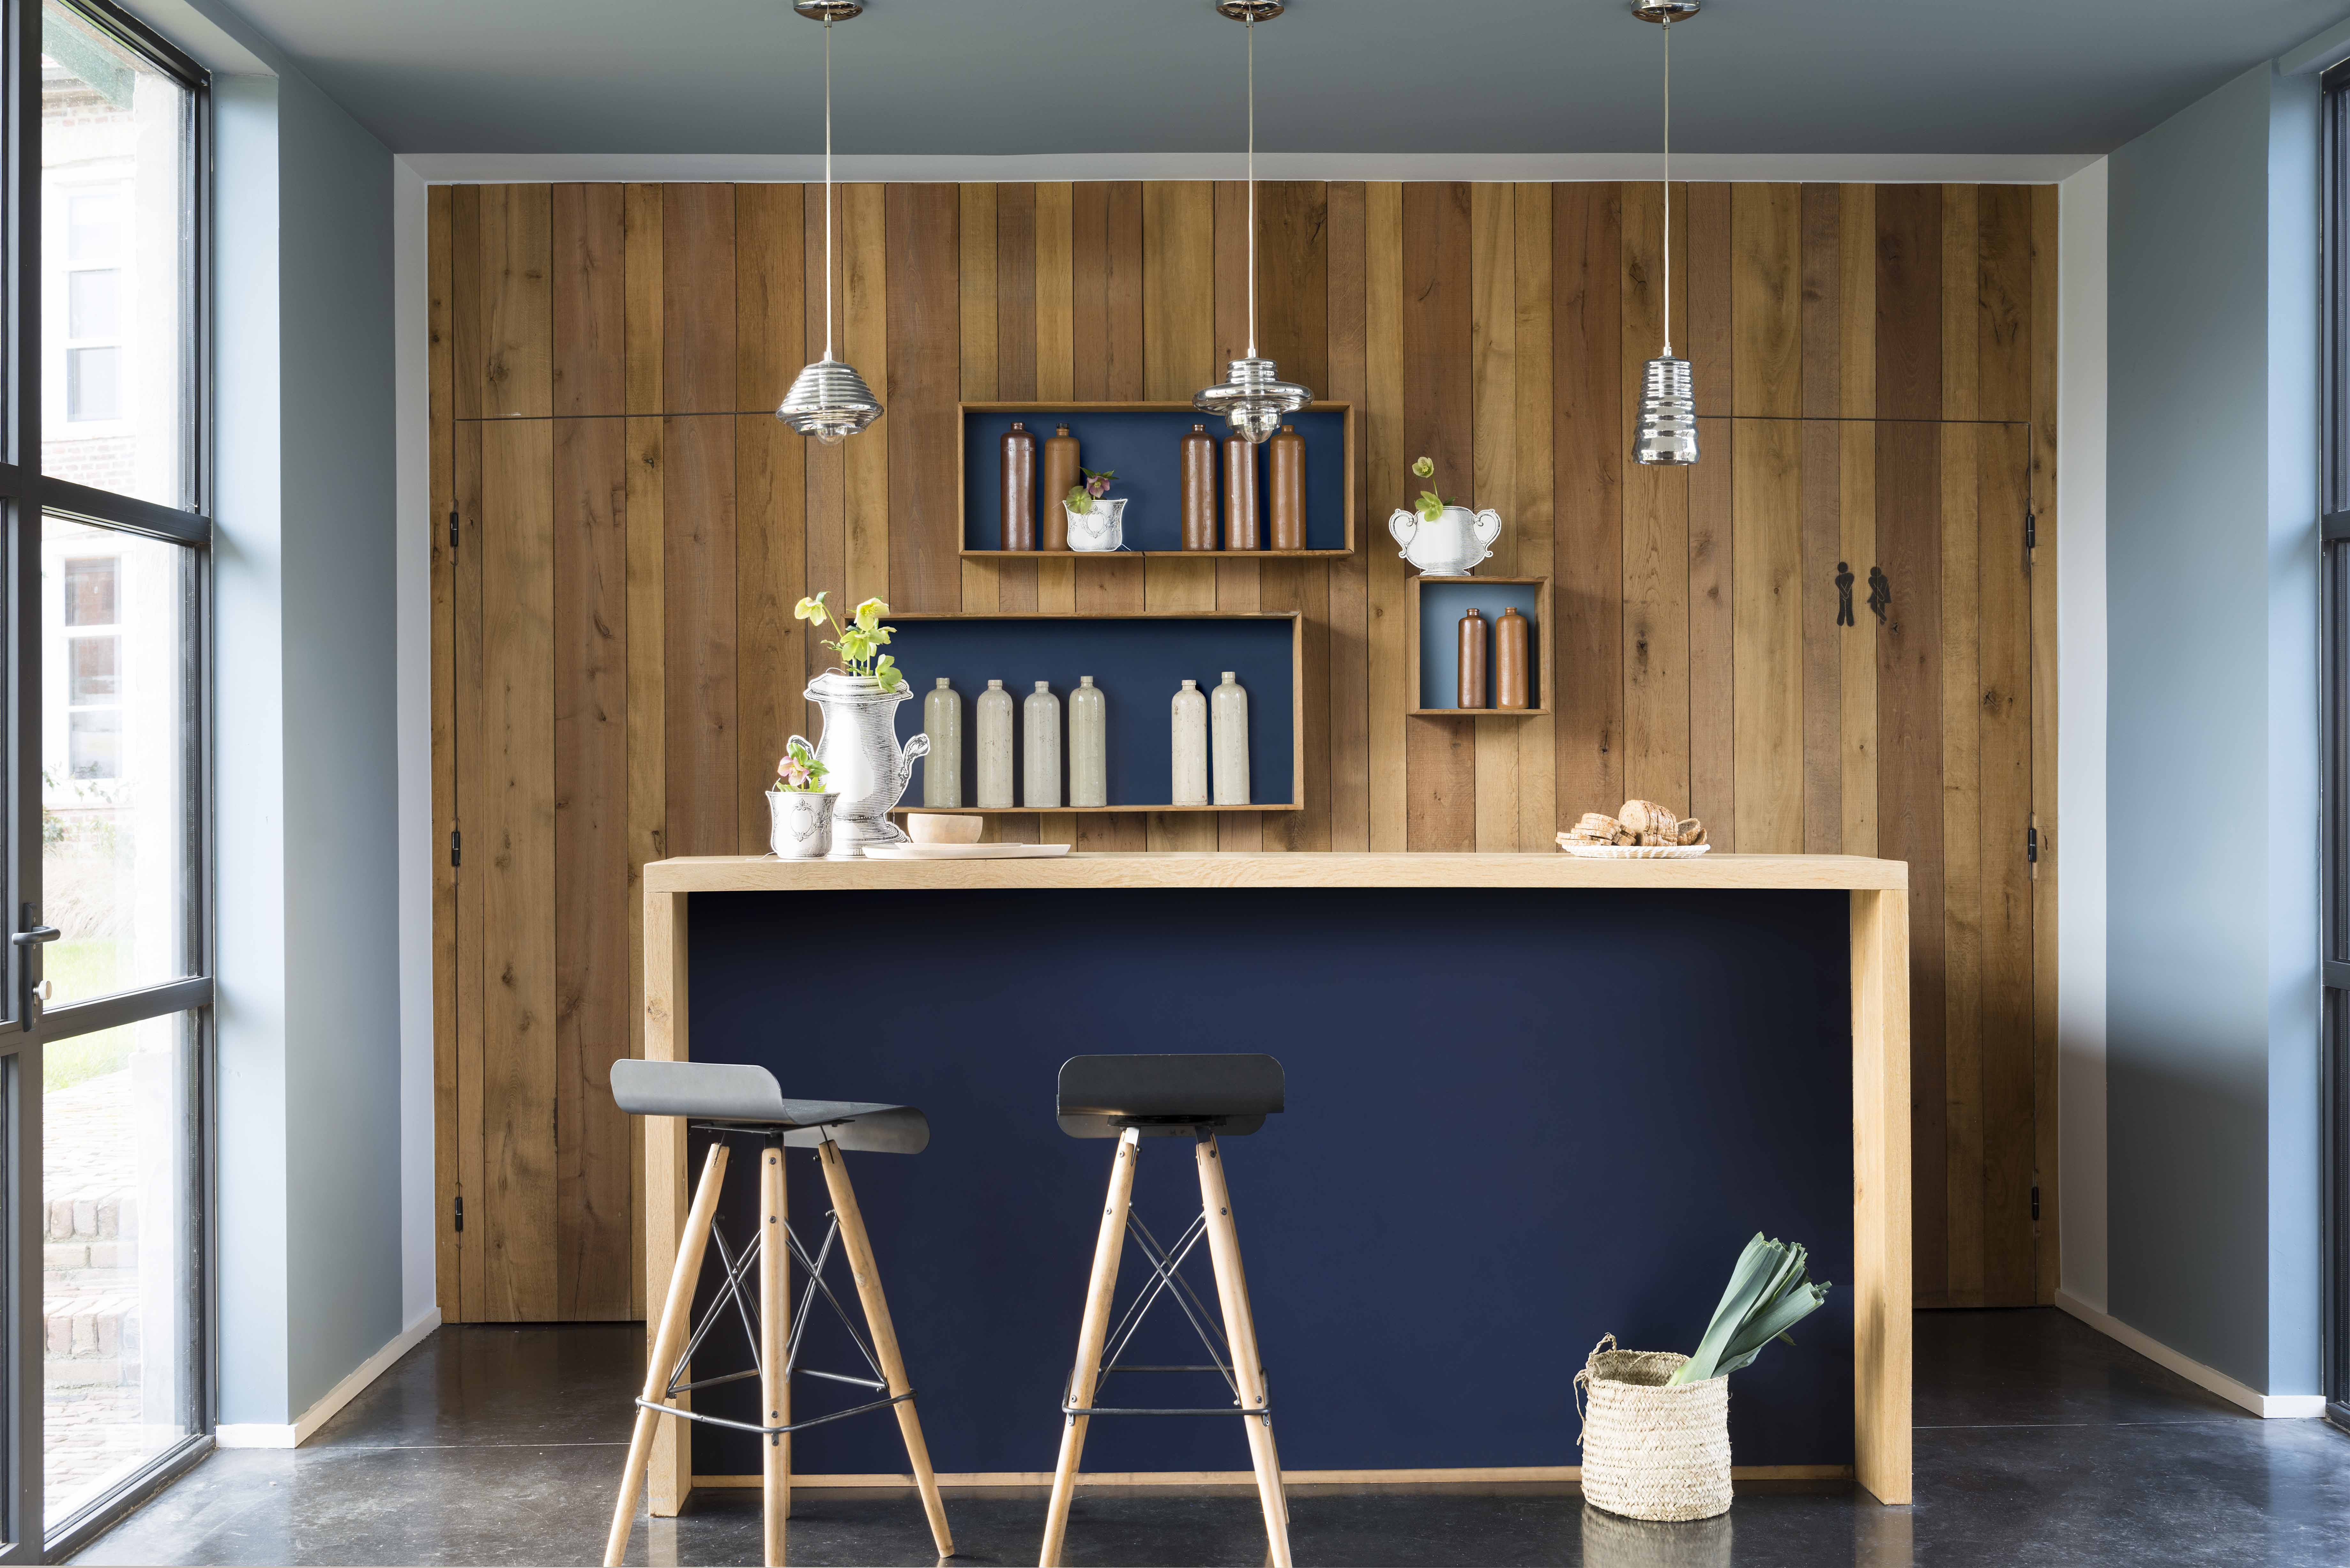 dulux-colour-futures-17-coty-bar-denim-drift-borrowed-blue-cobalt-night-earl-blue-indigo-shade